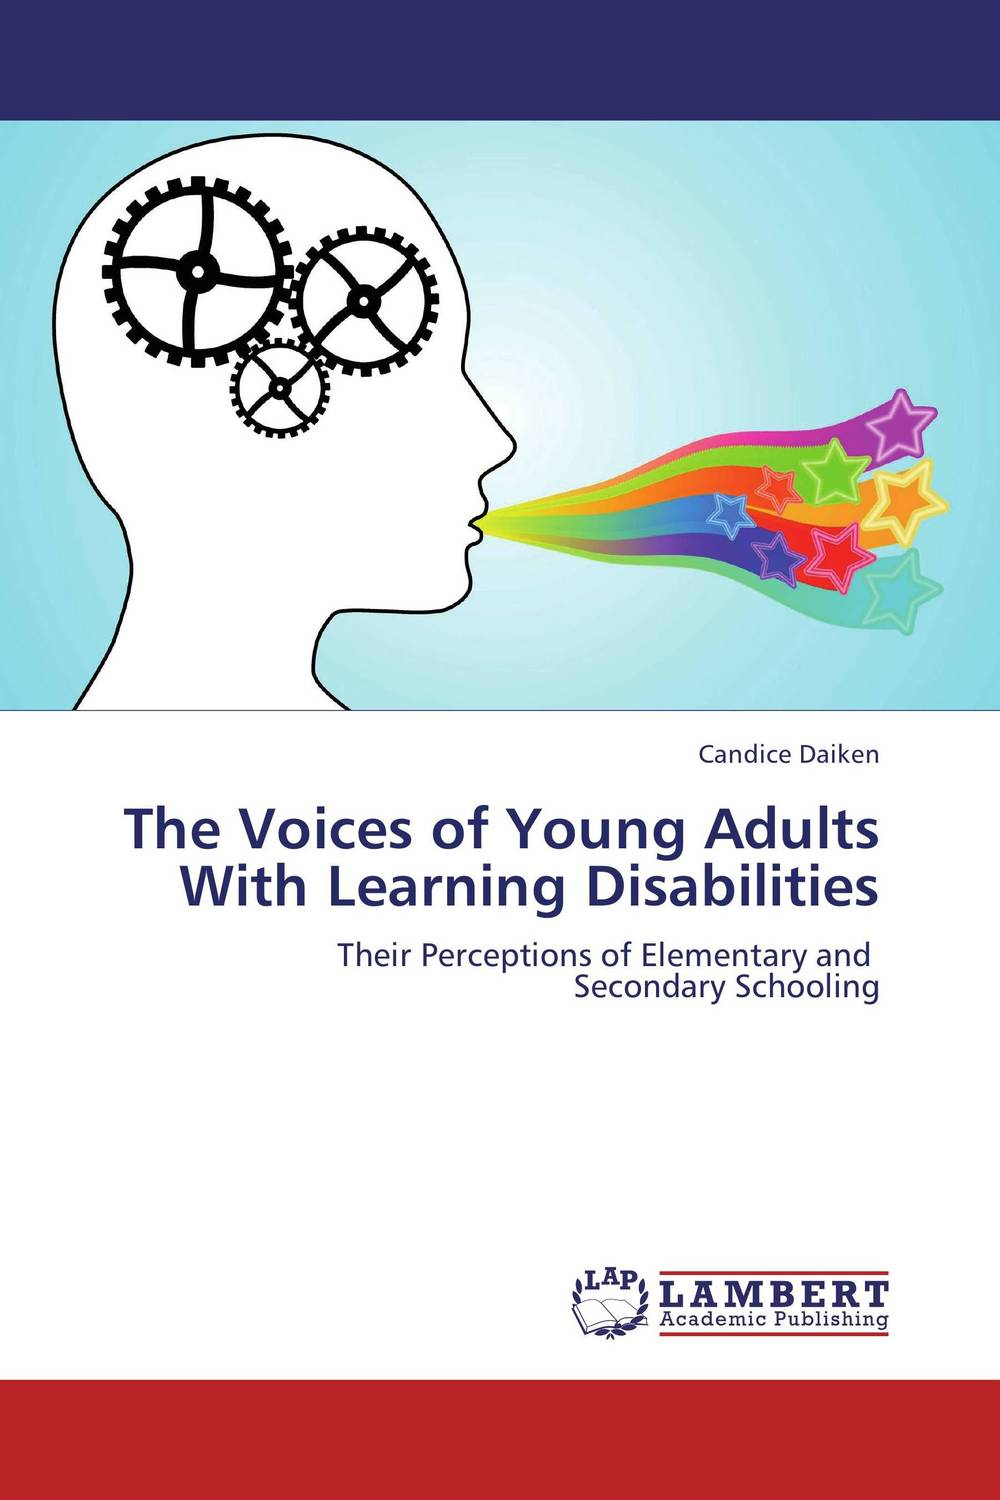 The Voices of Young Adults With Learning Disabilities